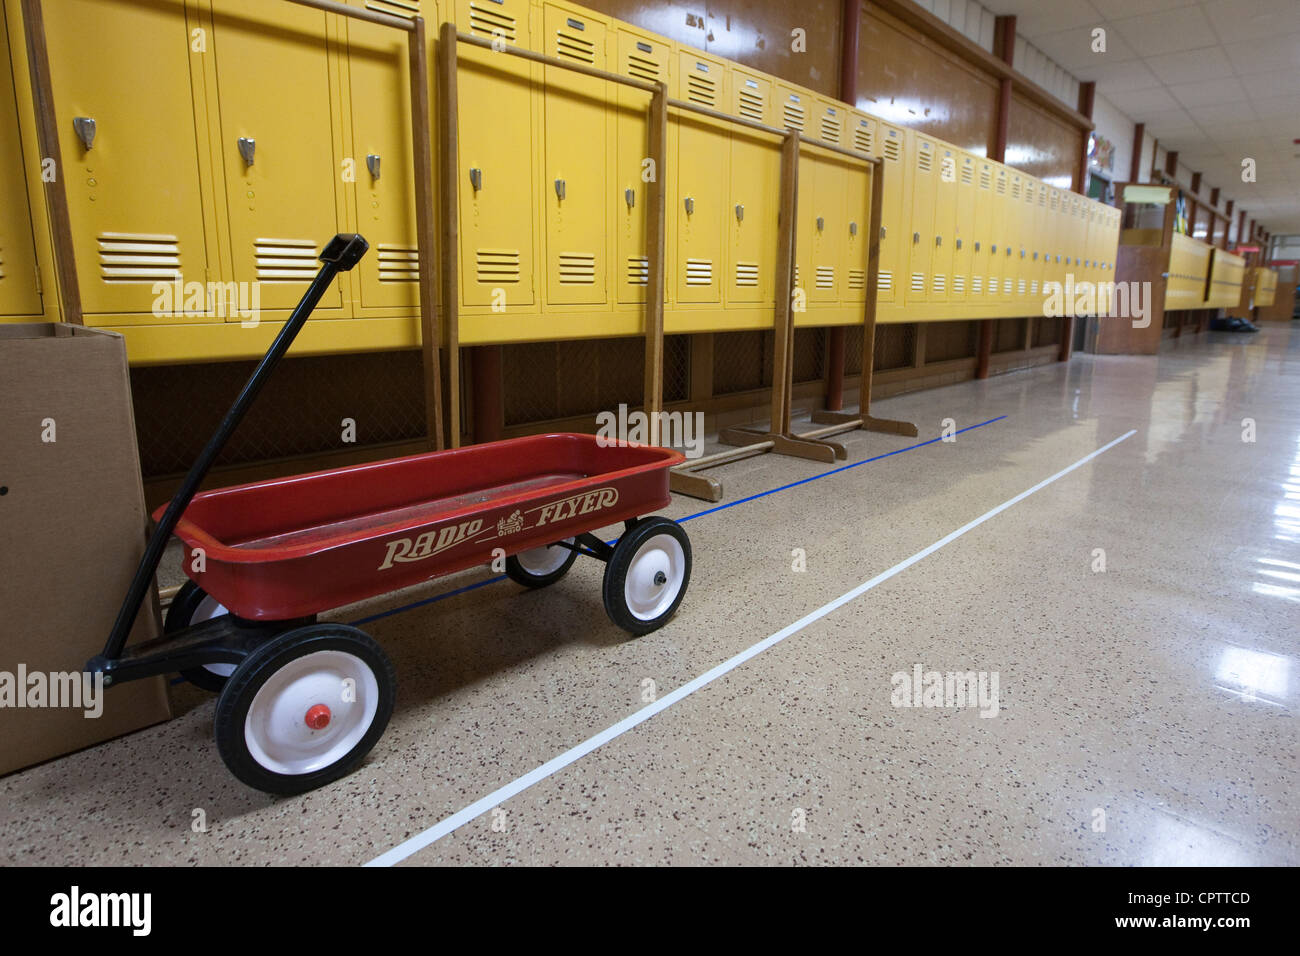 A red wagon stands in an empty hallway of a middle school closed for the summer in Texas - Stock Image